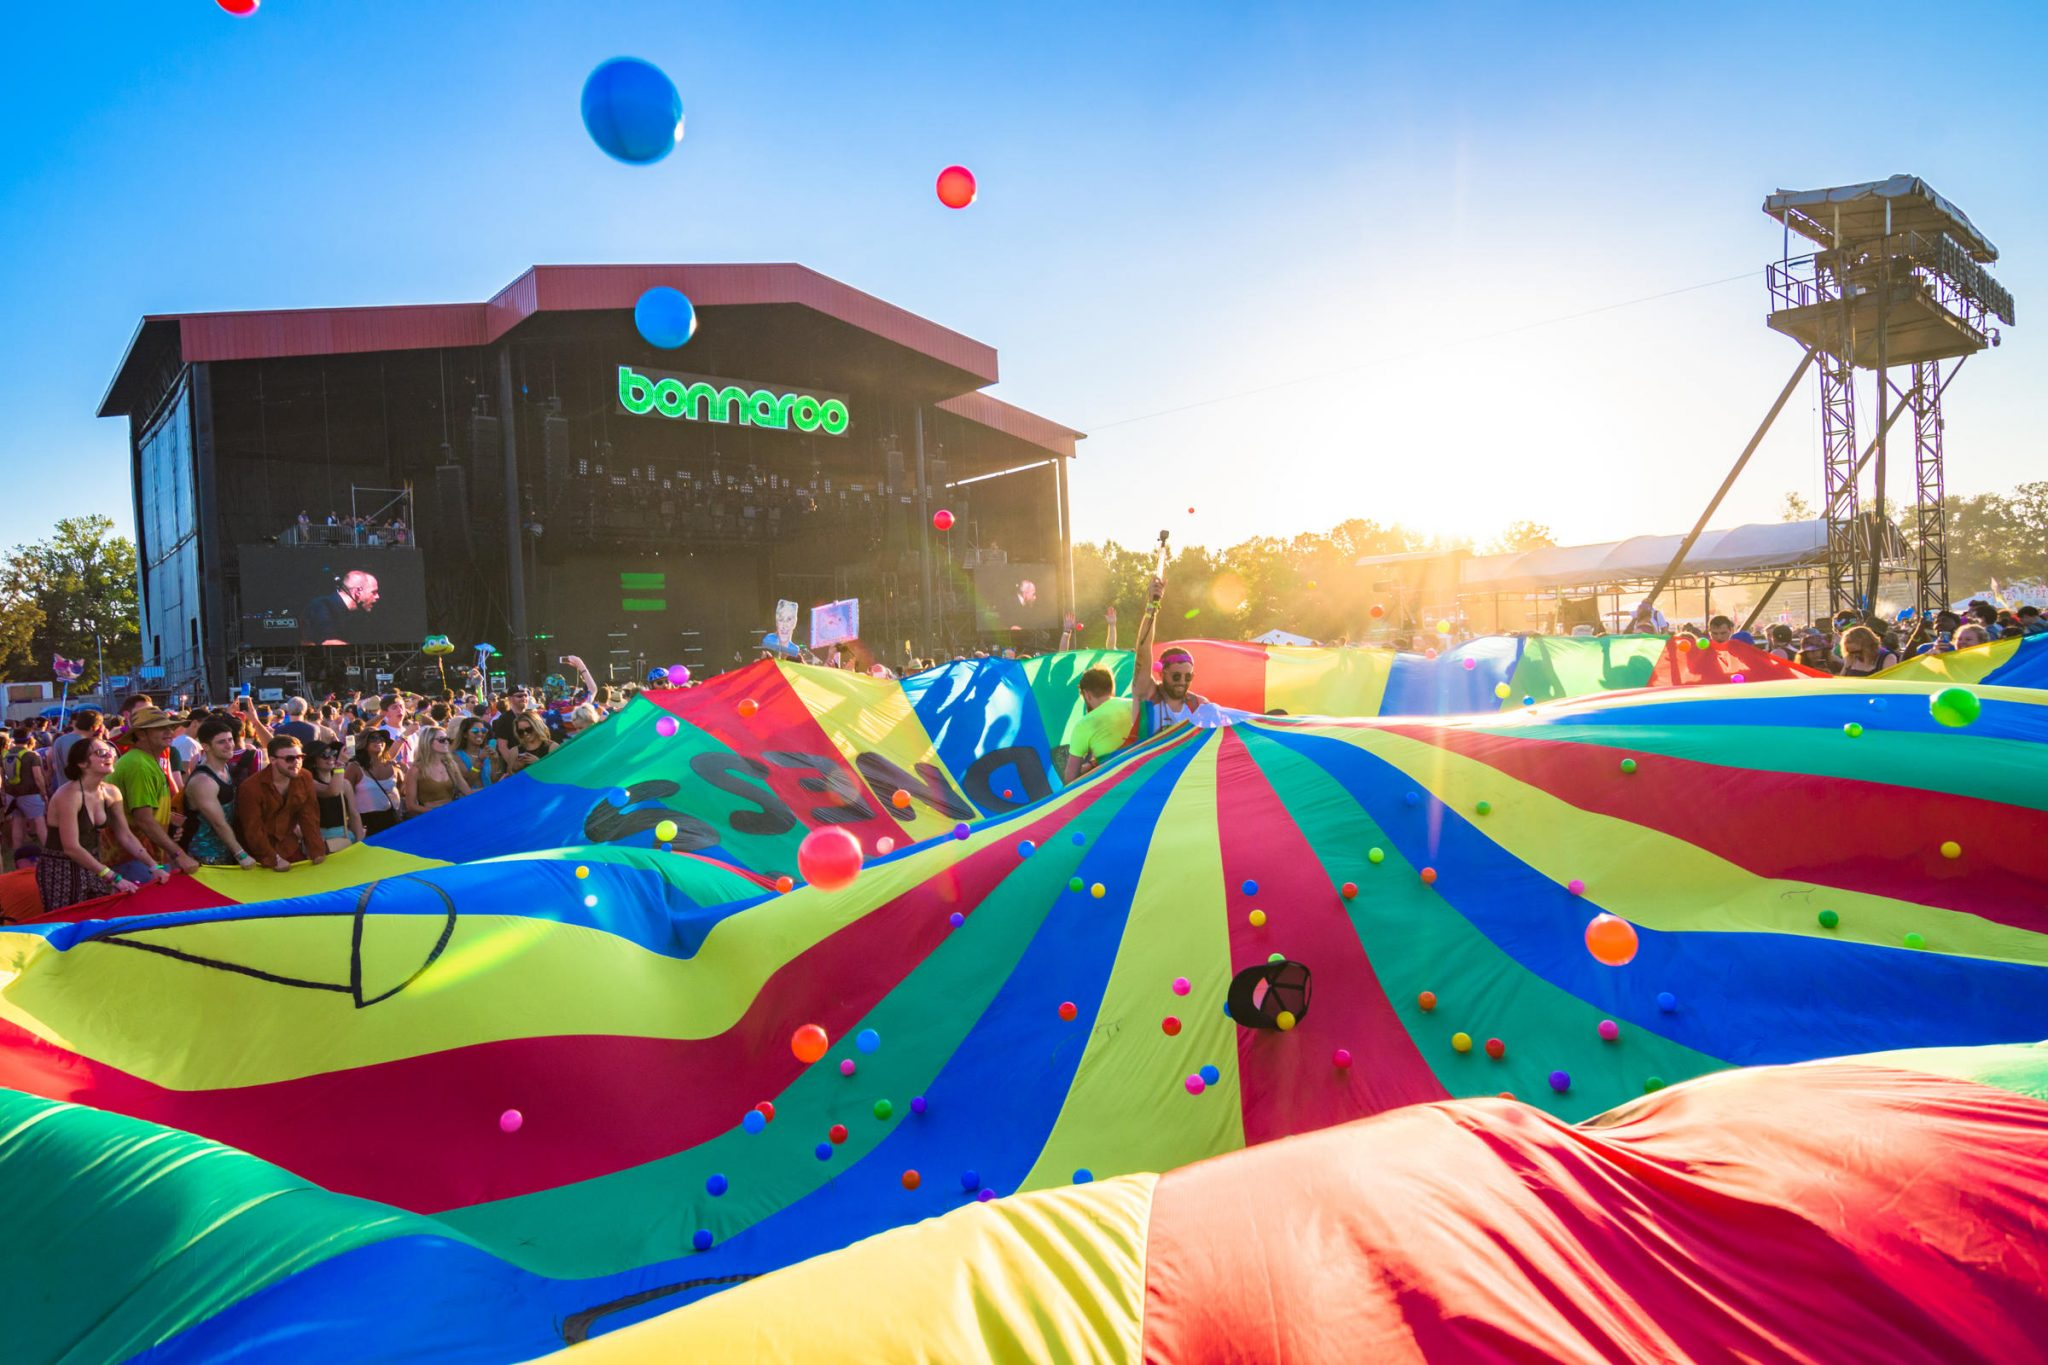 creating an epic fan experience at summer music festivals